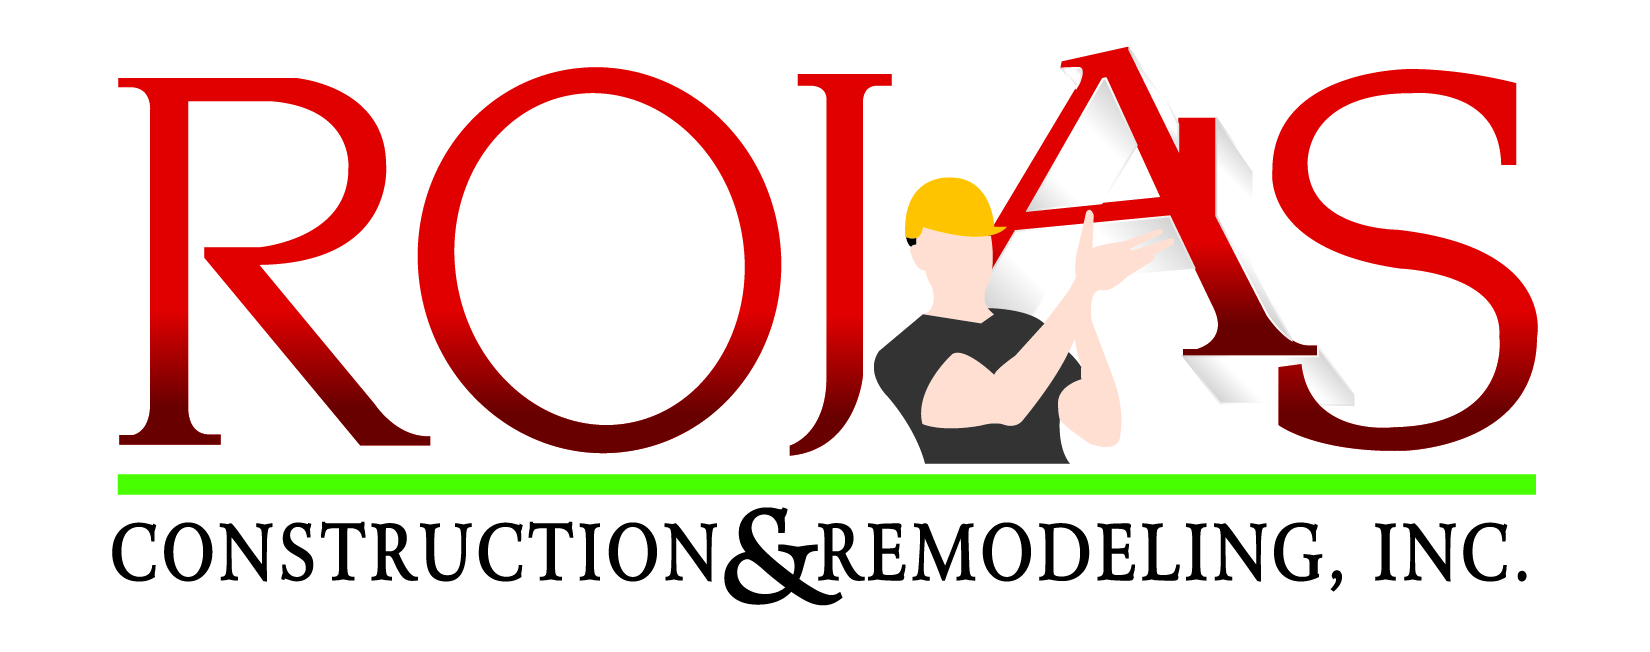 ROJAS Construction & Remodeling